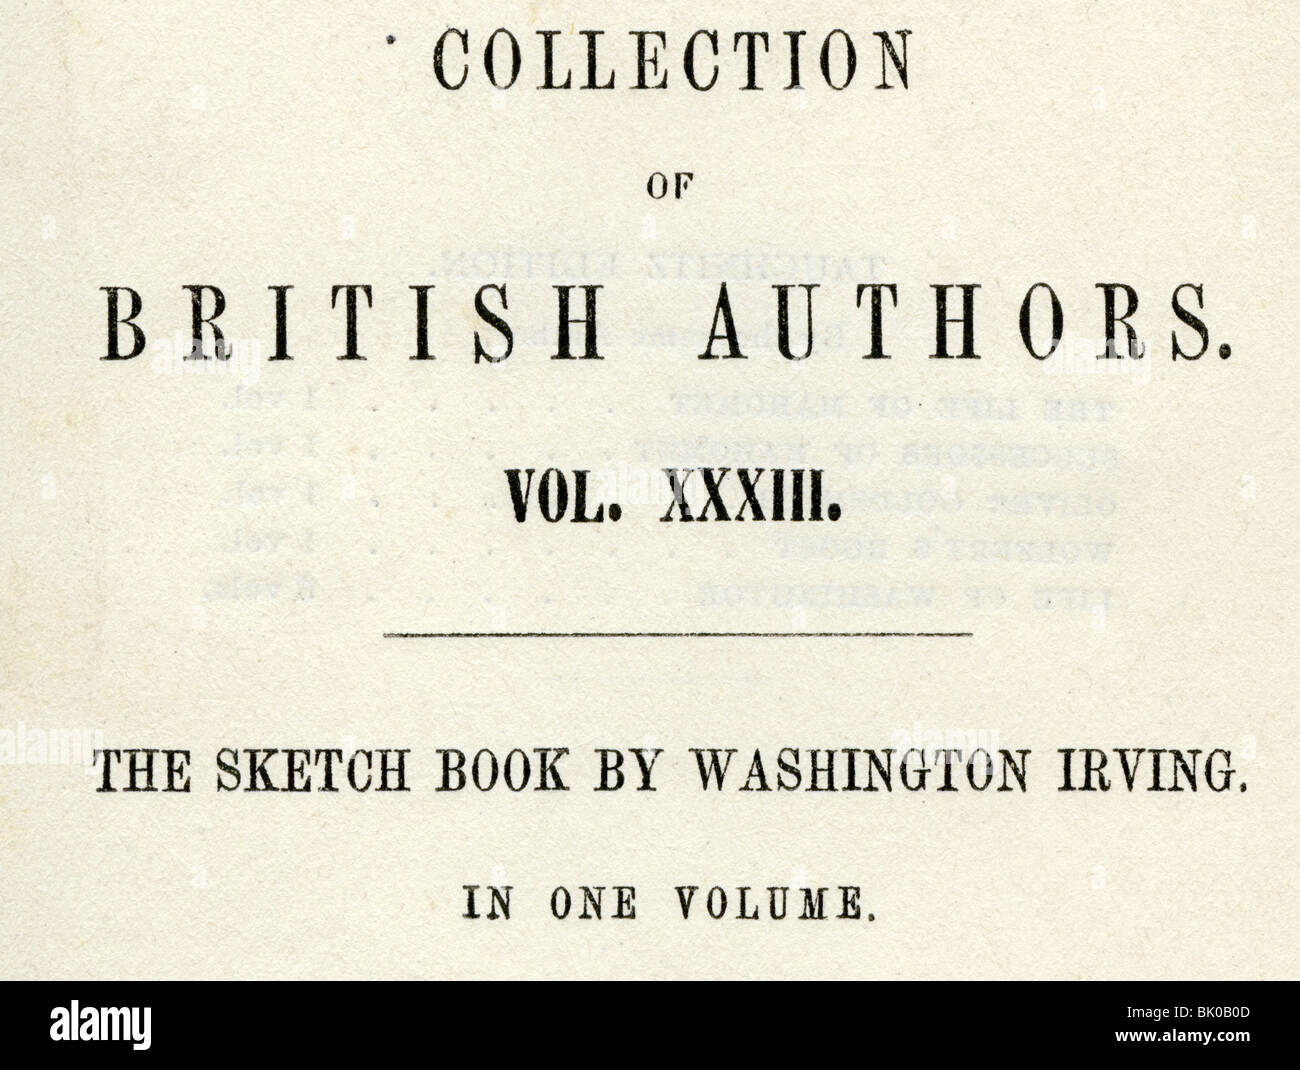 Irving, Washington, 3.4.1783 -  28.11.1859, American author / writer, works, 'The Scetch Book' (1819 - 1820), - Stock Image